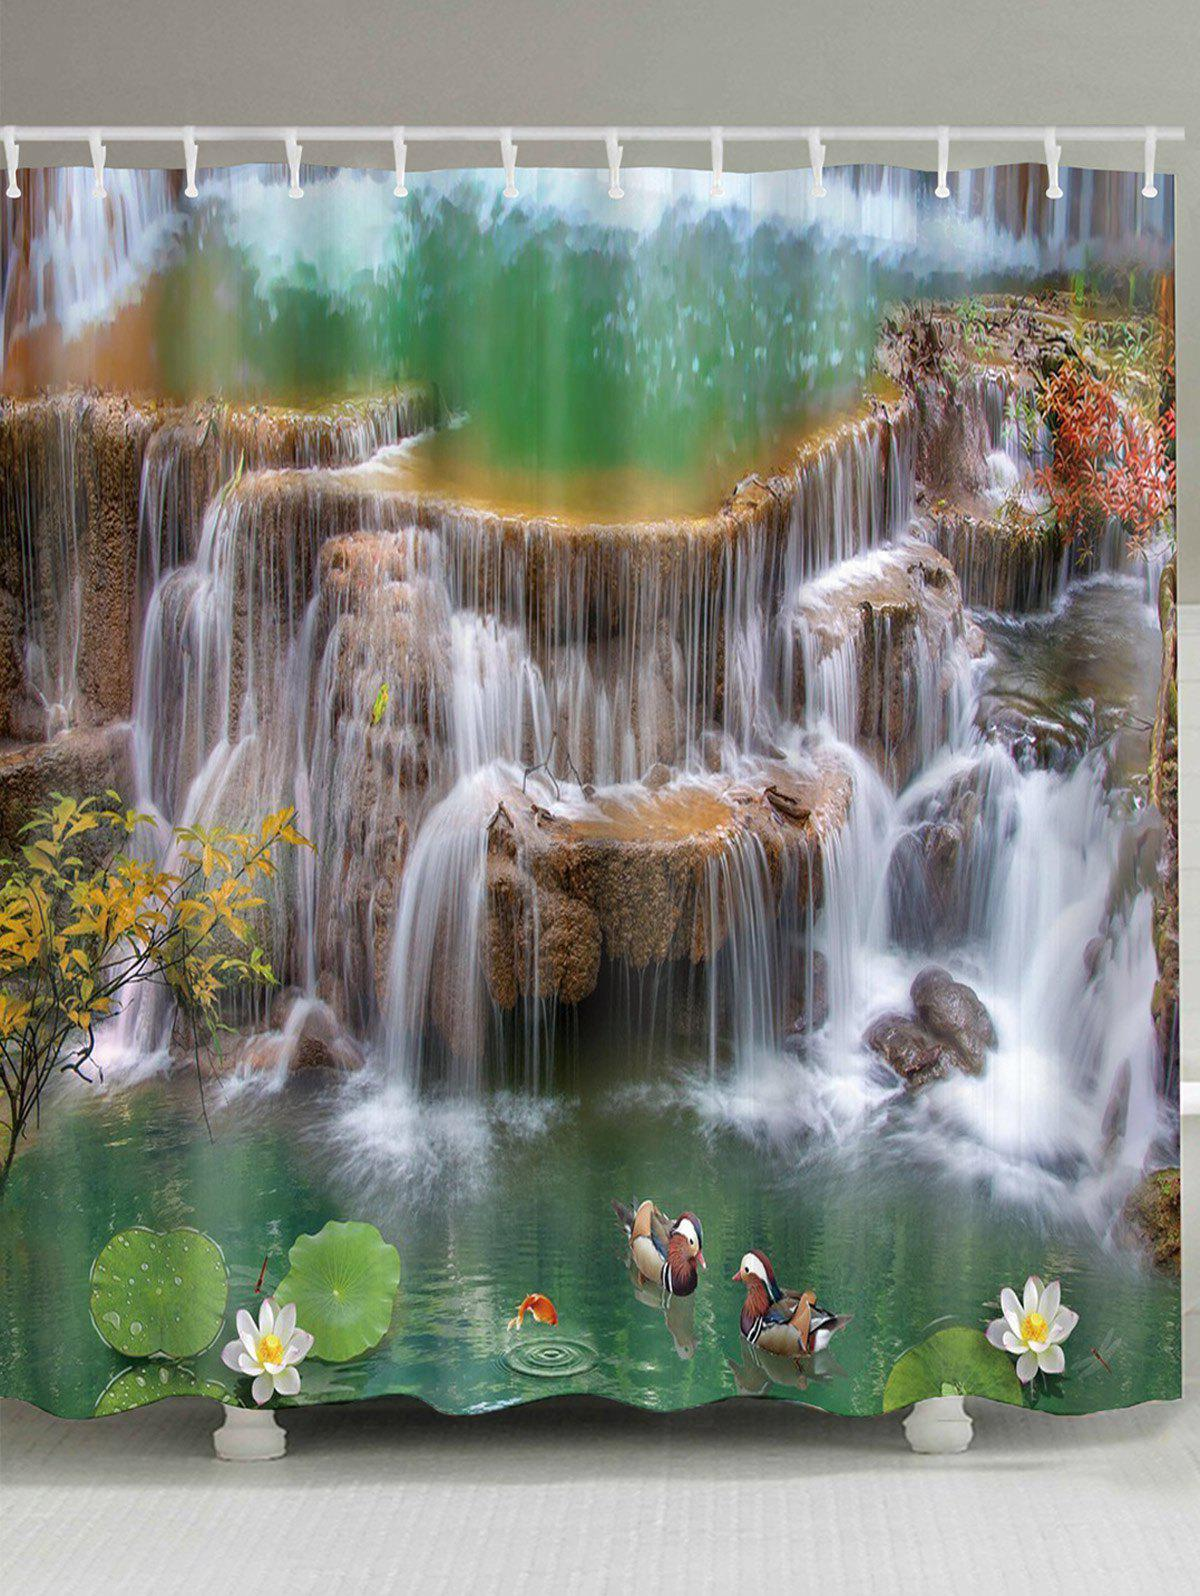 Waterfall Lotus Mandarin Duck Print Waterproof Bath Curtain - multicolor A W71 INCH * L79 INCH